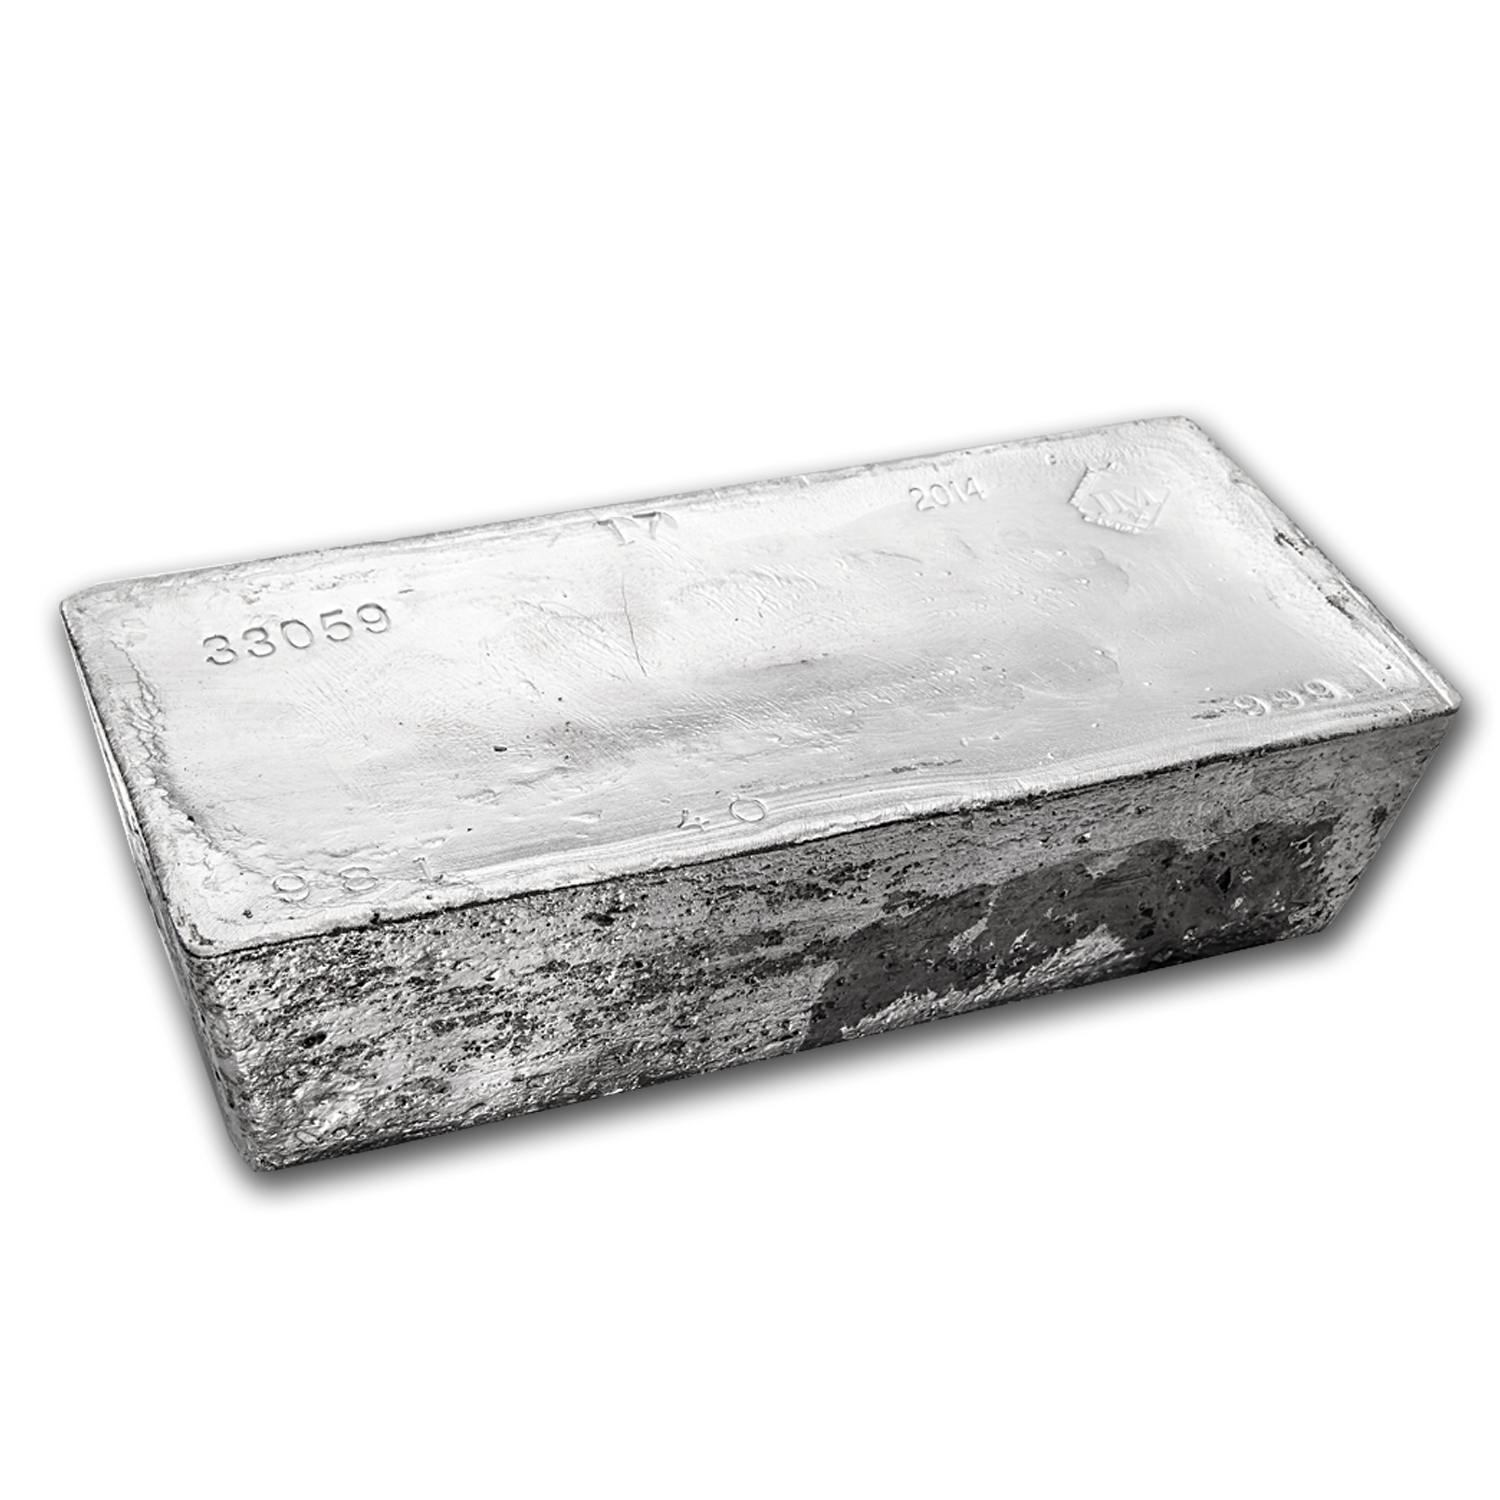 974.30 oz Silver Bars - Johnson Matthey